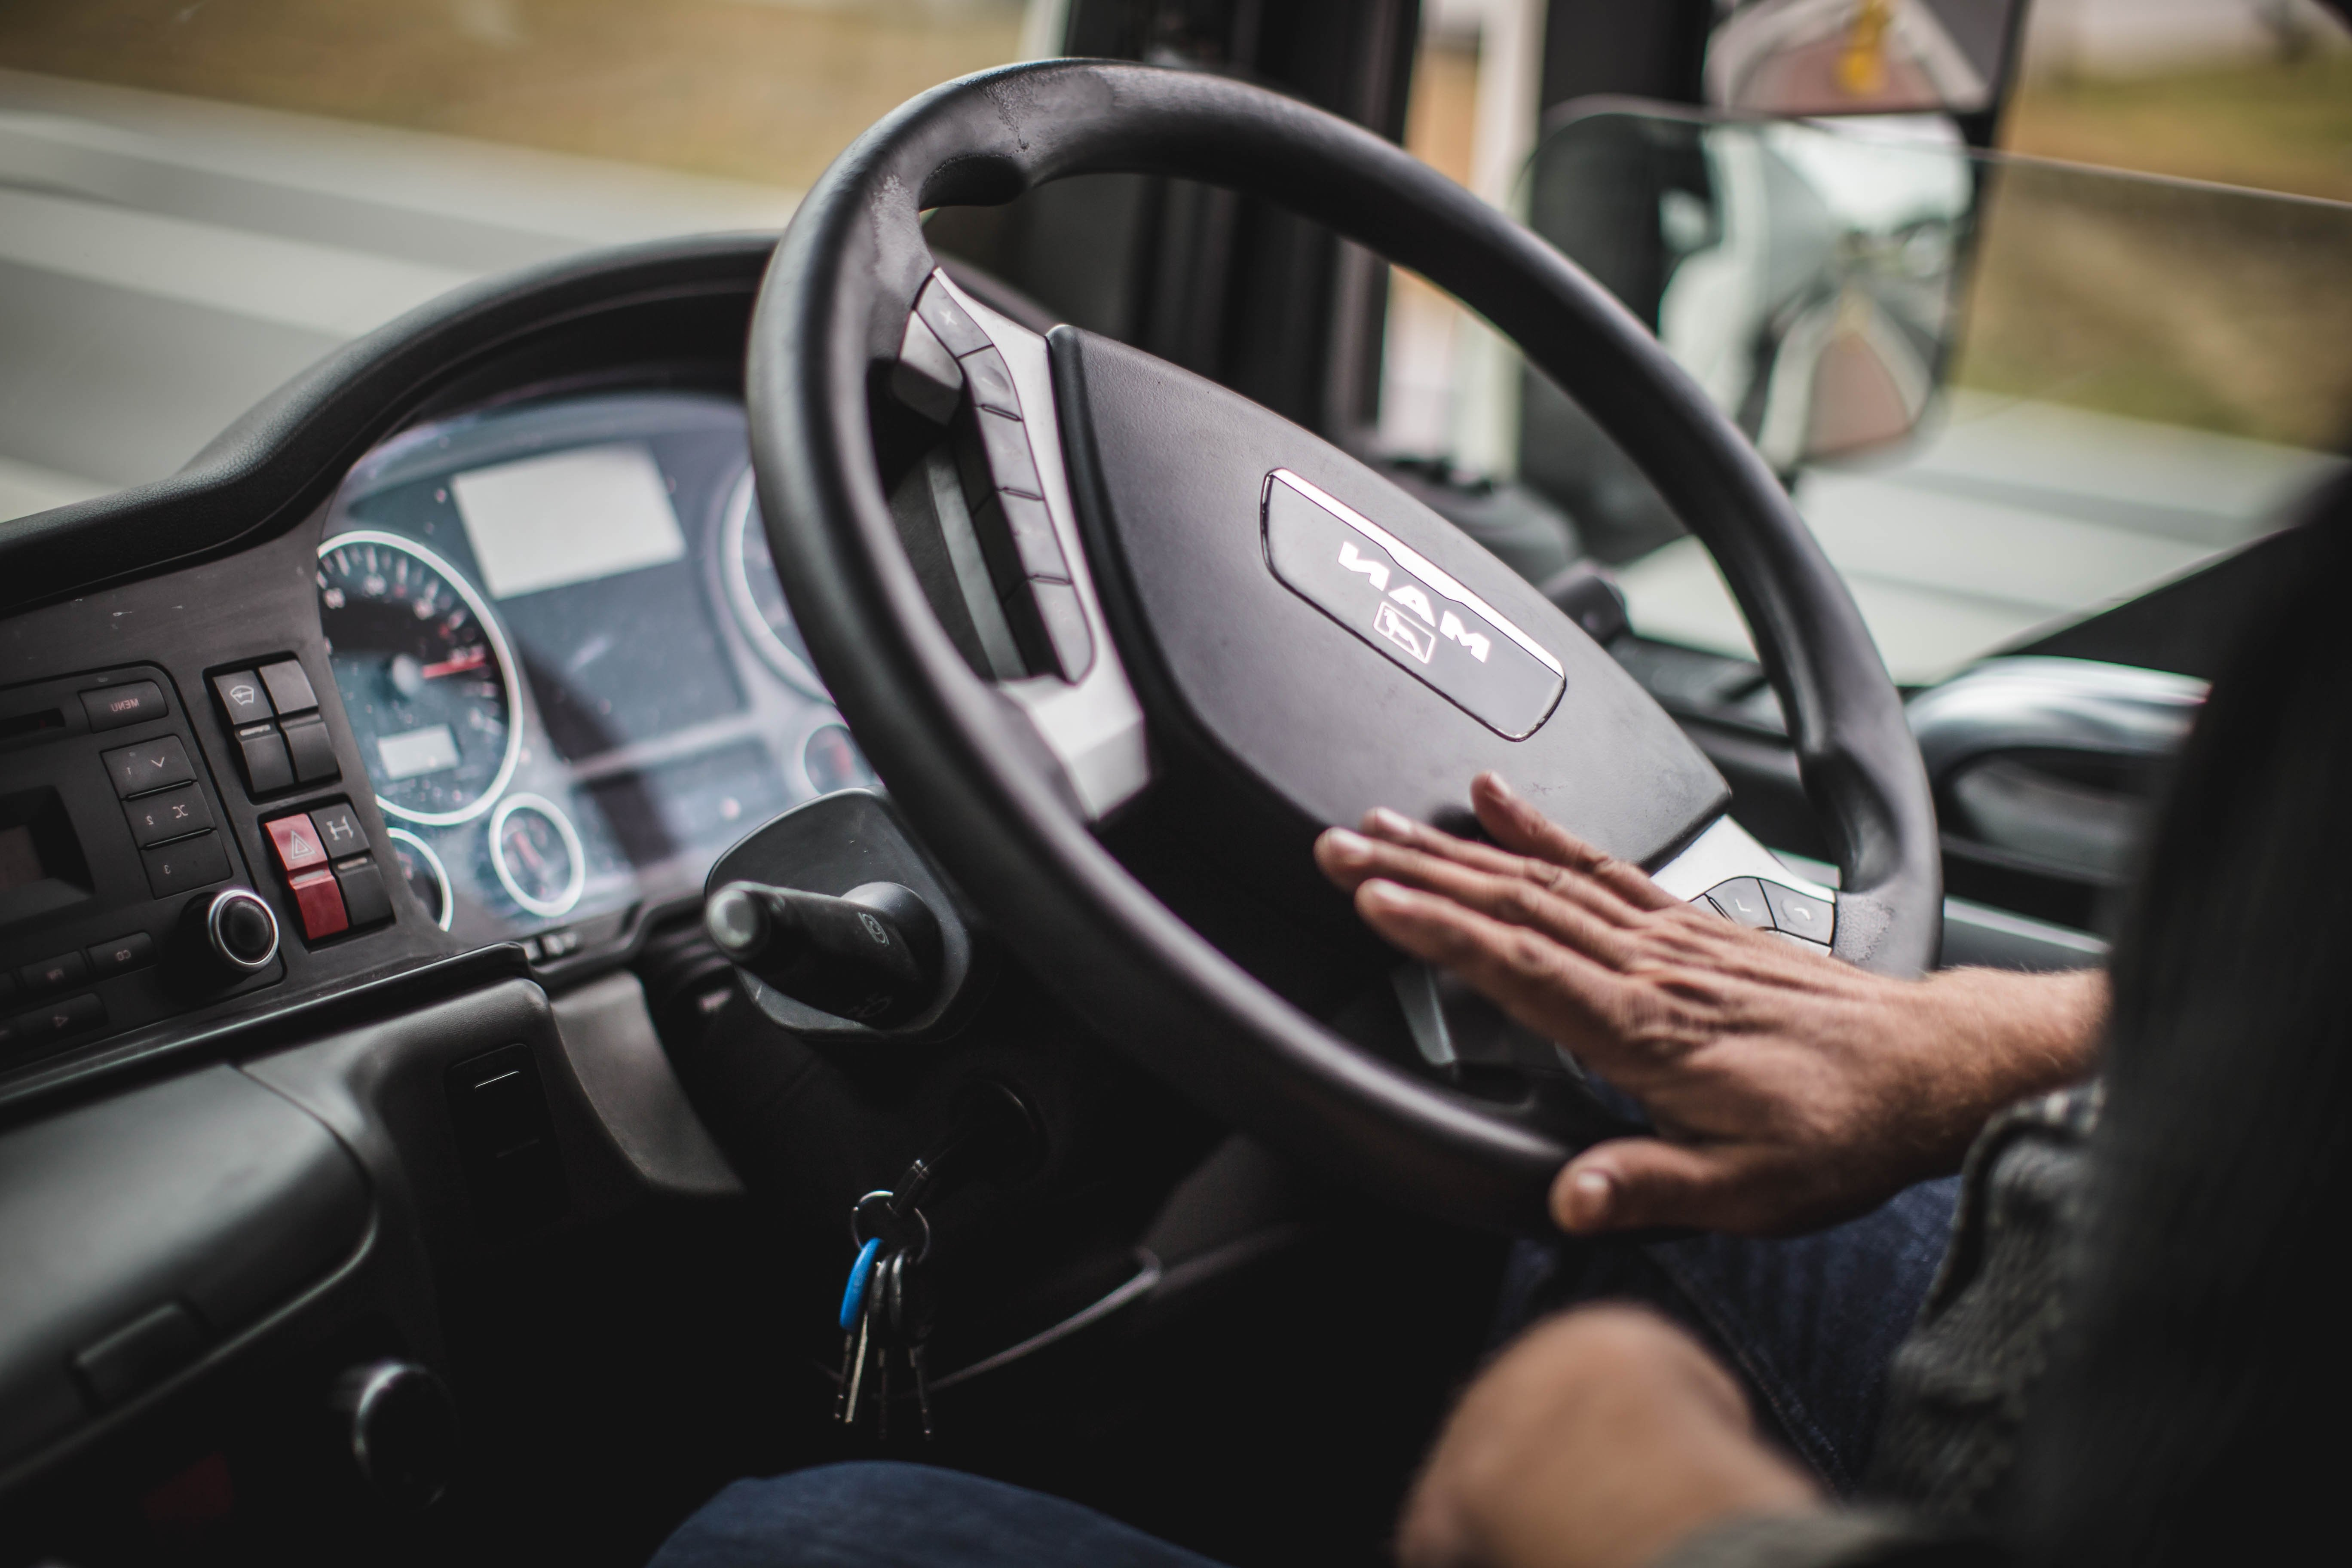 Logistics UK want interest-free loans to support HGV driver training